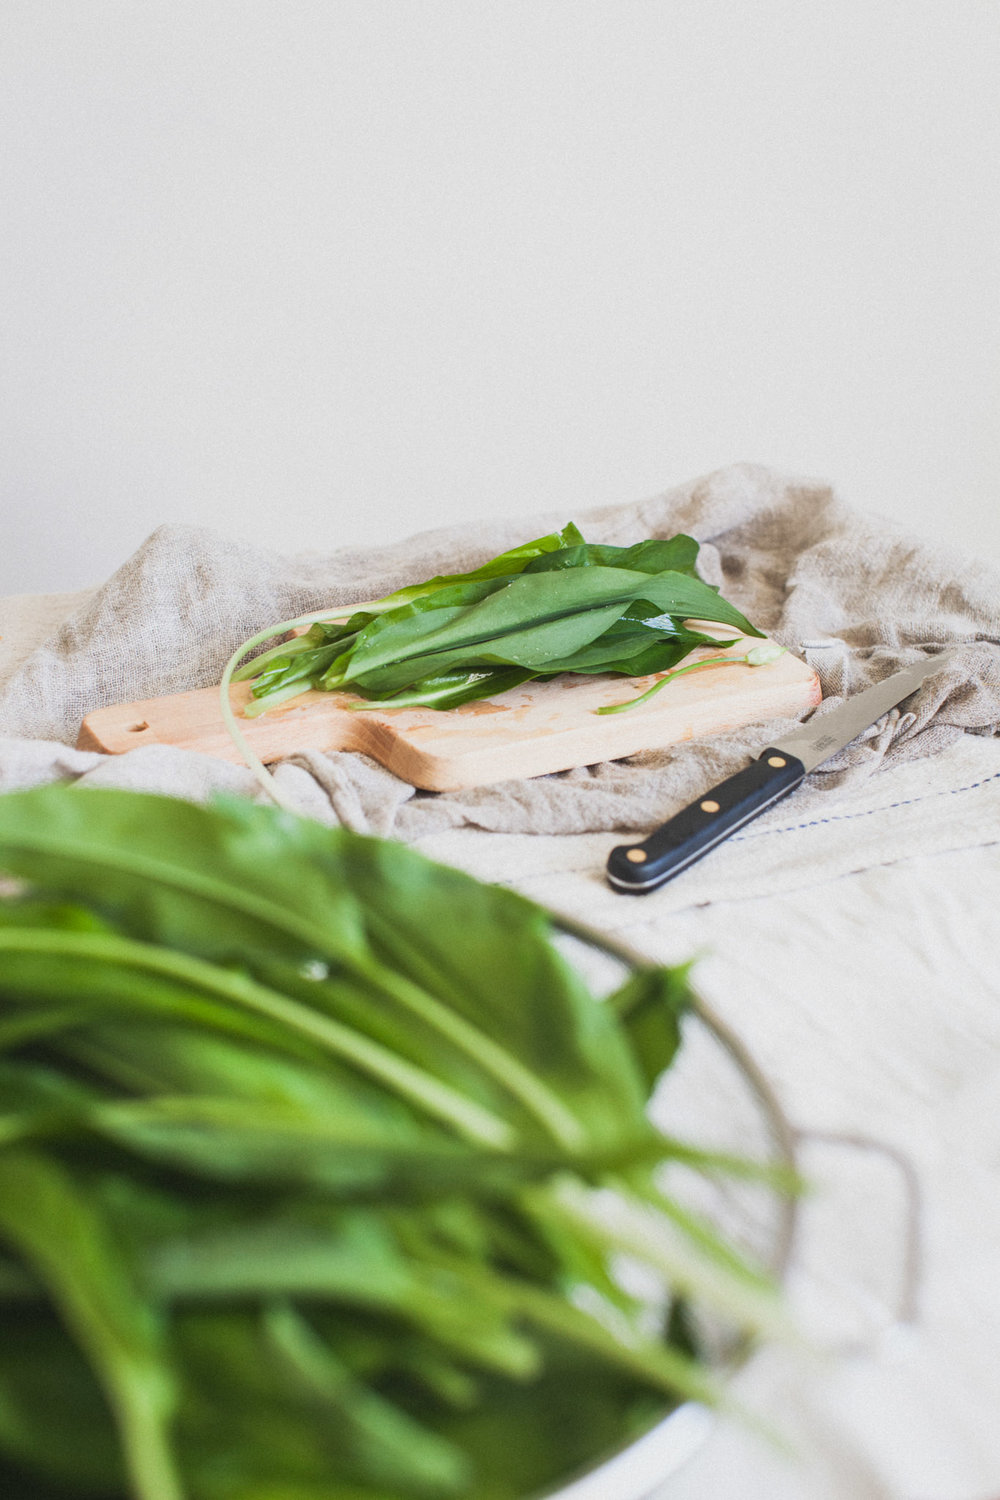 Wild garlic - what to do with it and where to find it in Sussex. Retreat // Food and lifestyle blog based in Sussex. Photography by Emma Gutteridge.